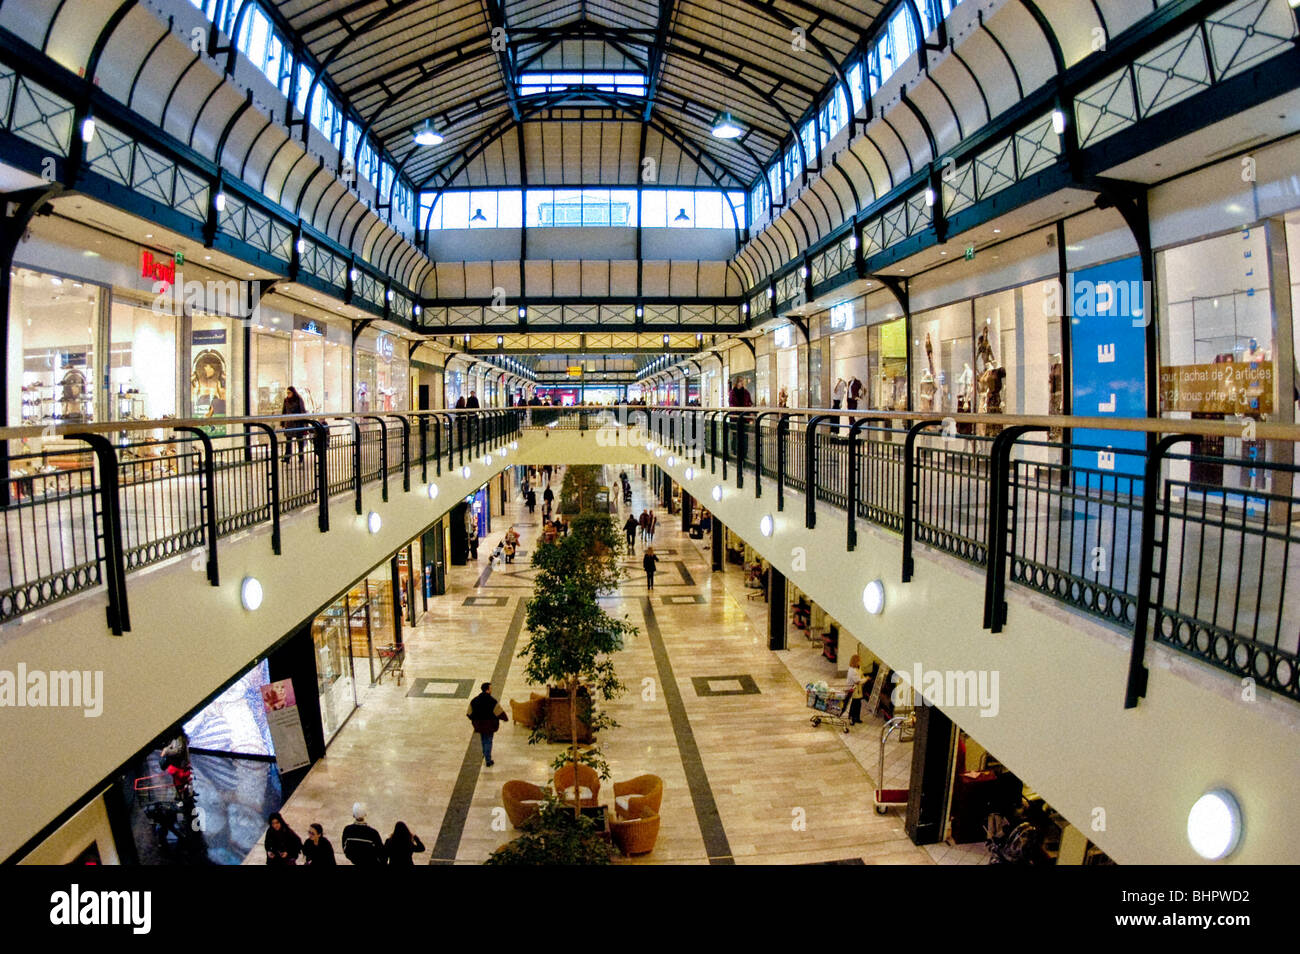 paris france marne la vallee val d 39 europe inside shopping center stock photo 28162430 alamy. Black Bedroom Furniture Sets. Home Design Ideas